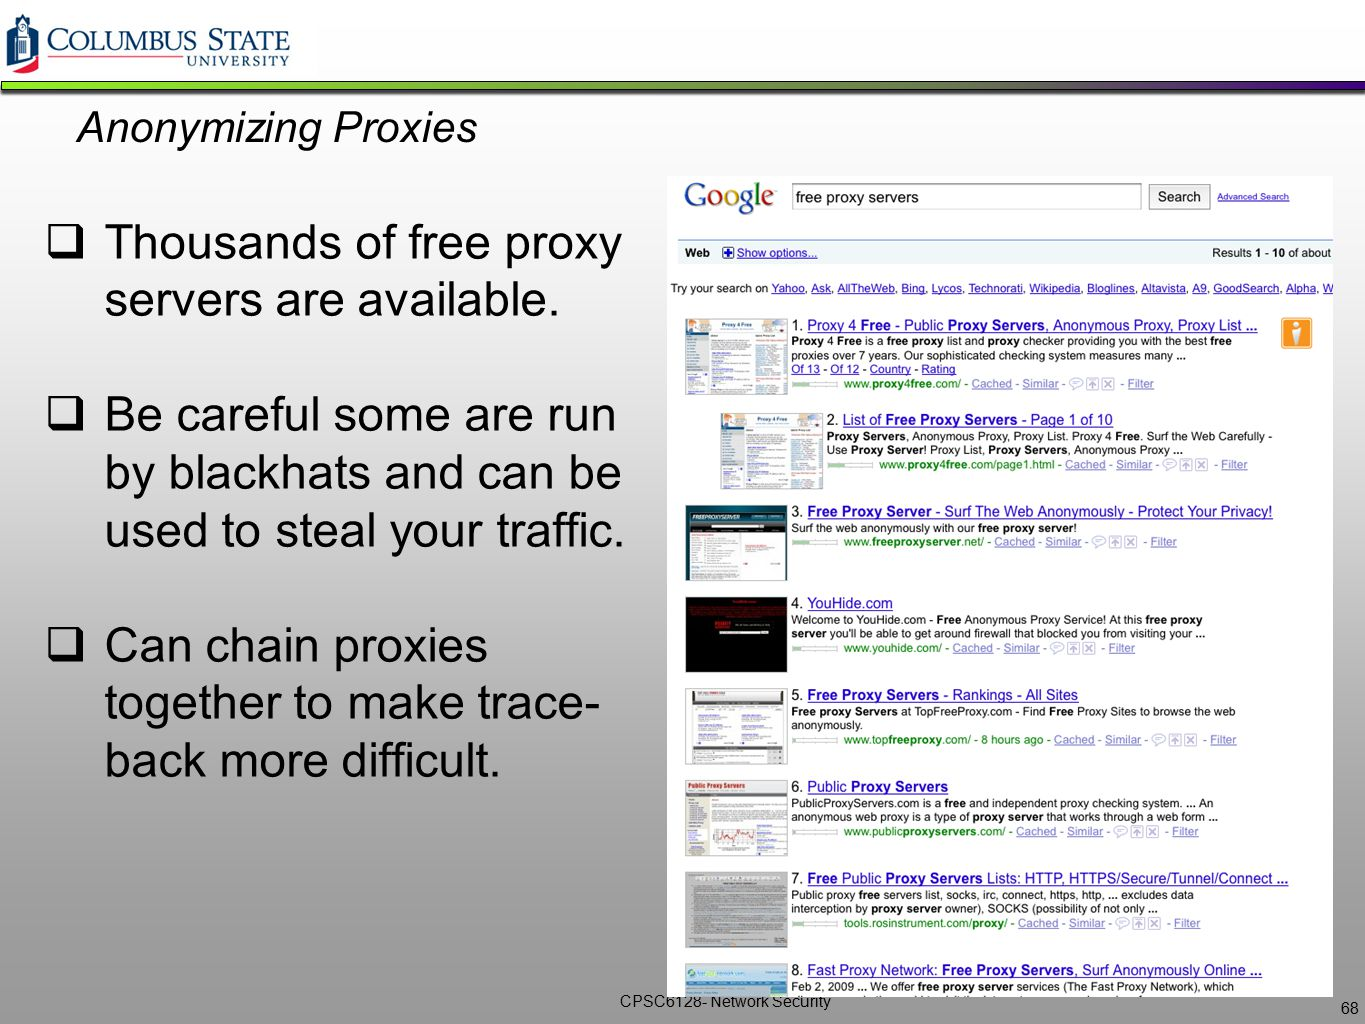 Thousands of free proxy servers are available.